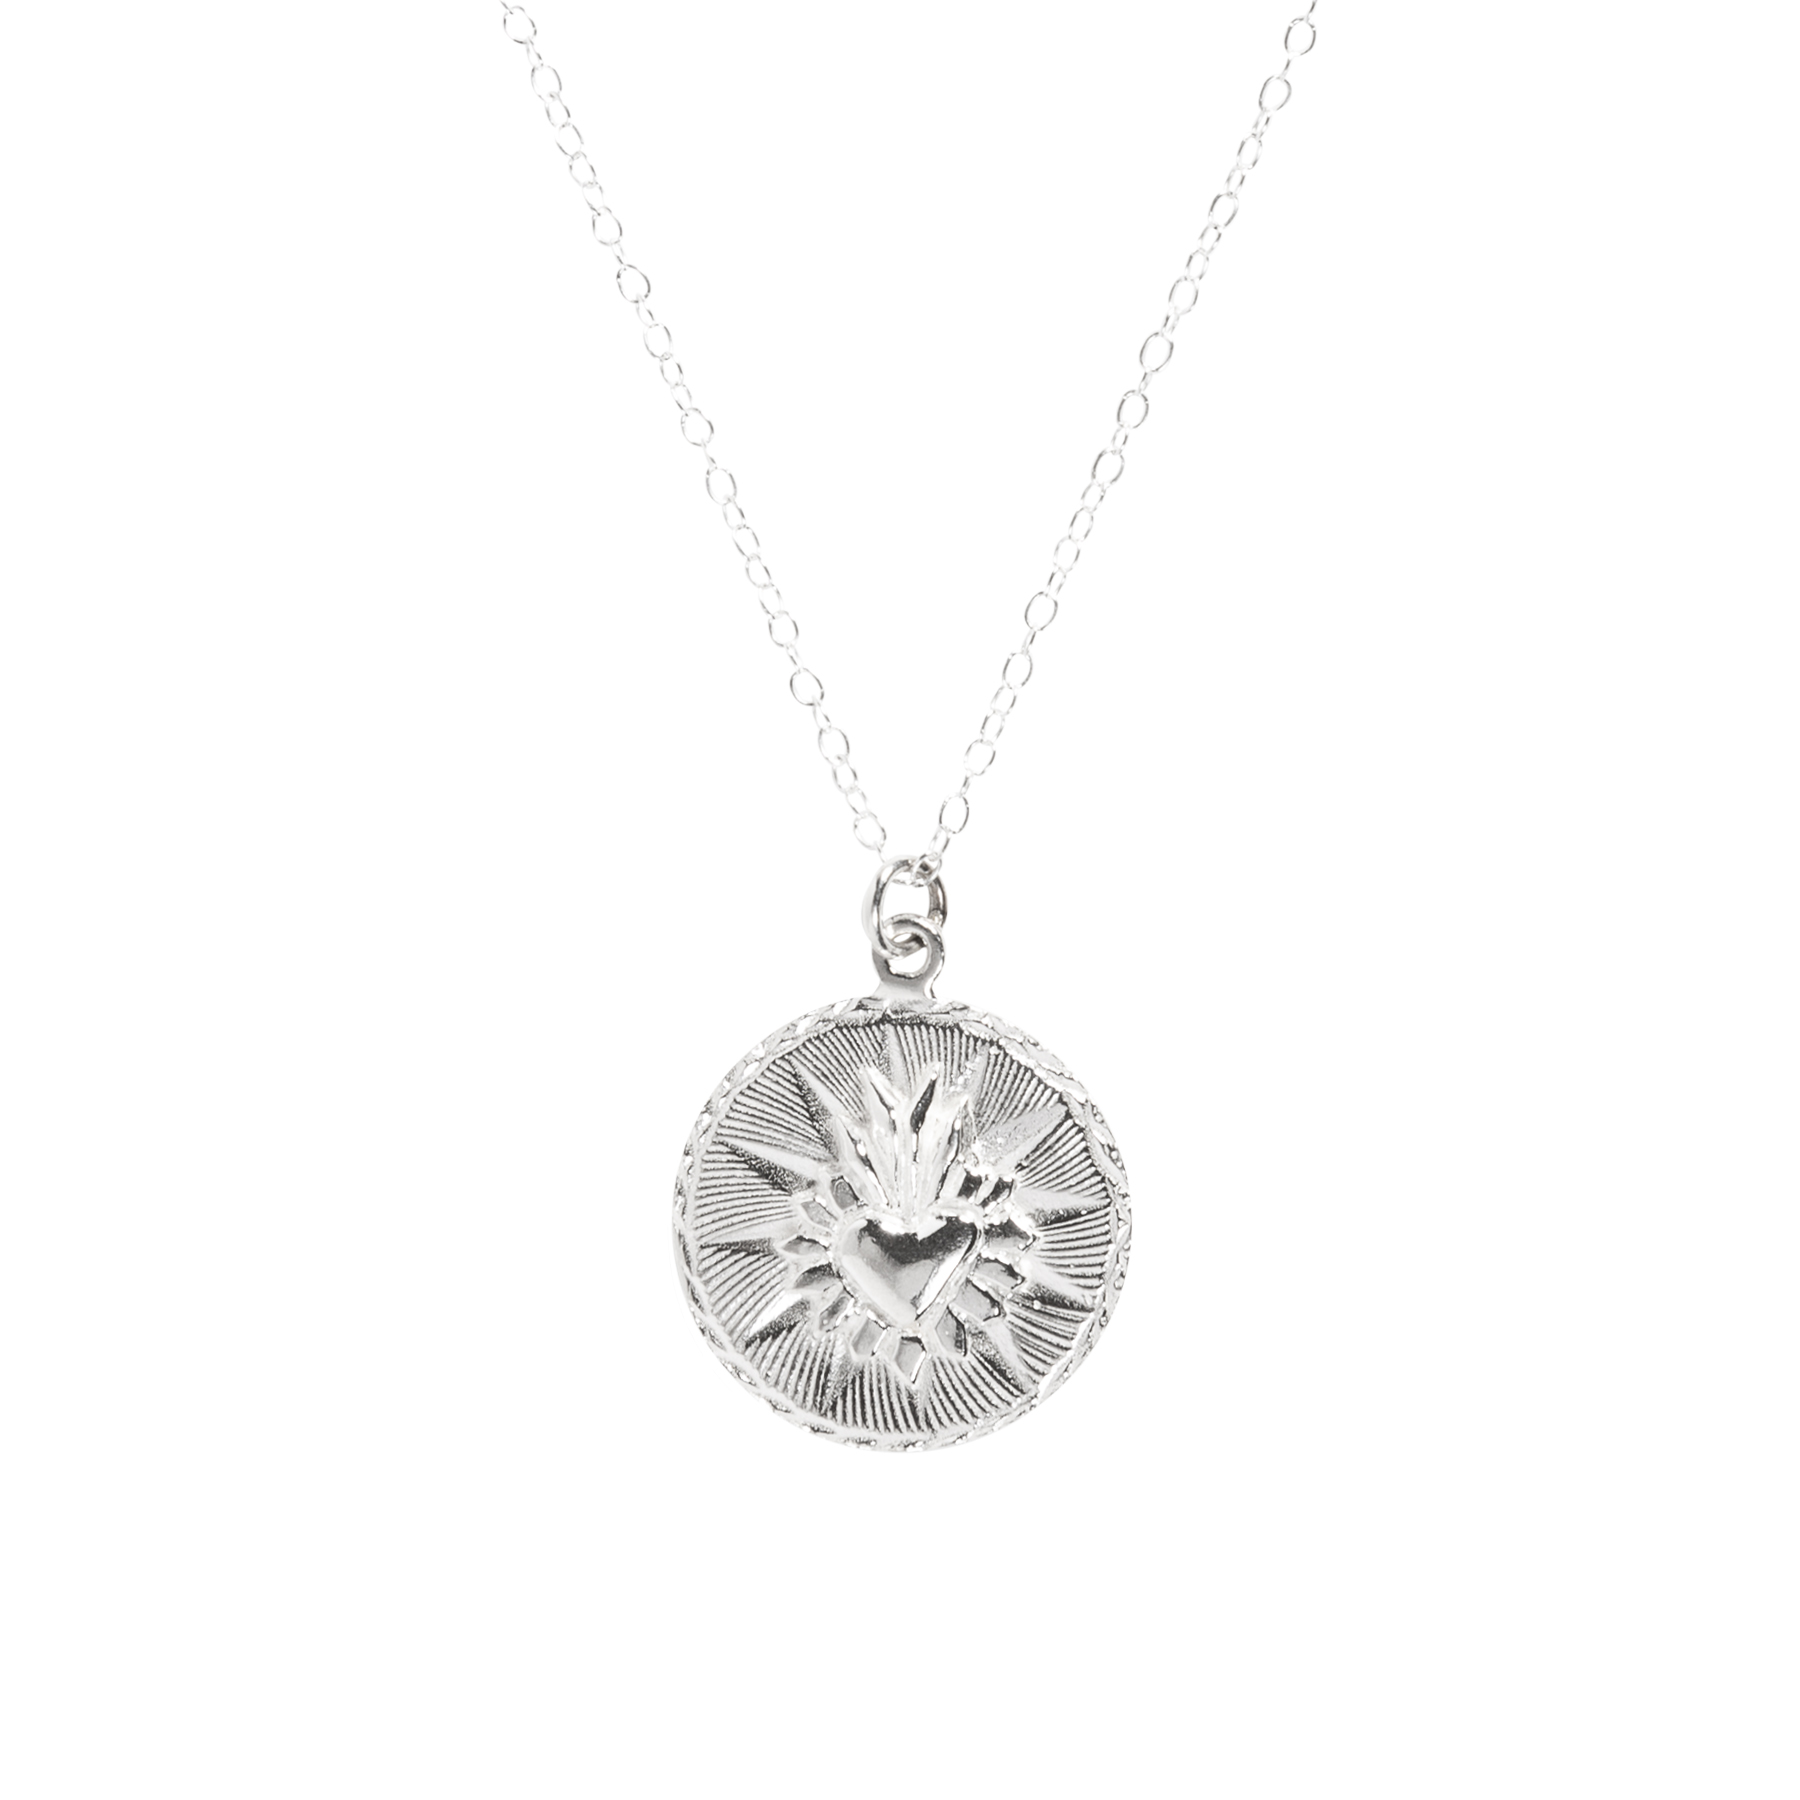 Silver - Solid Sterling SilverMight tarnish over time. Hypoallergenic.Affordable precious metal. Metal might scratch and burnish over time with daily use.Necklaces come with solid sterling silver chain.Cleaning:Brush lime + baking soda, rinse and pat dry.